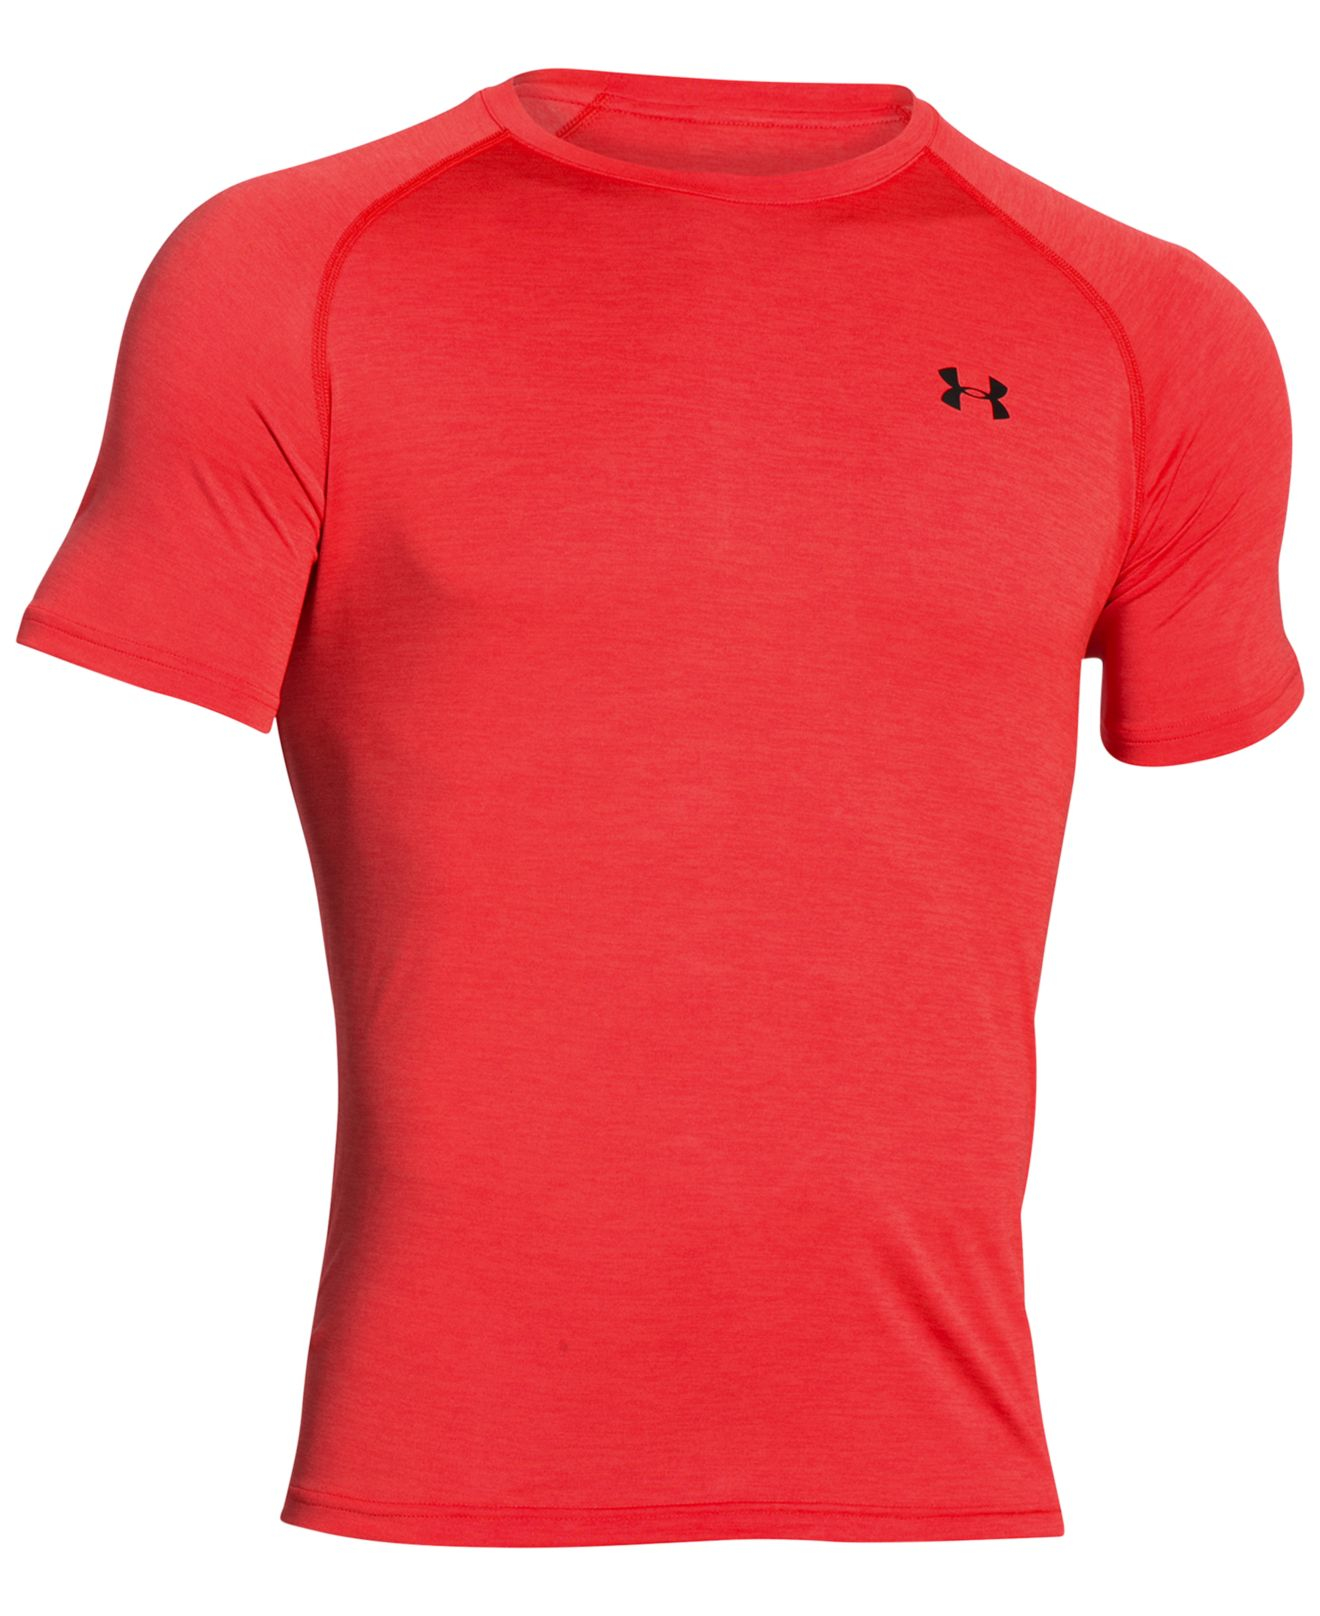 Under Armour Men 39 S Tech T Shirt In Red For Men Red Black